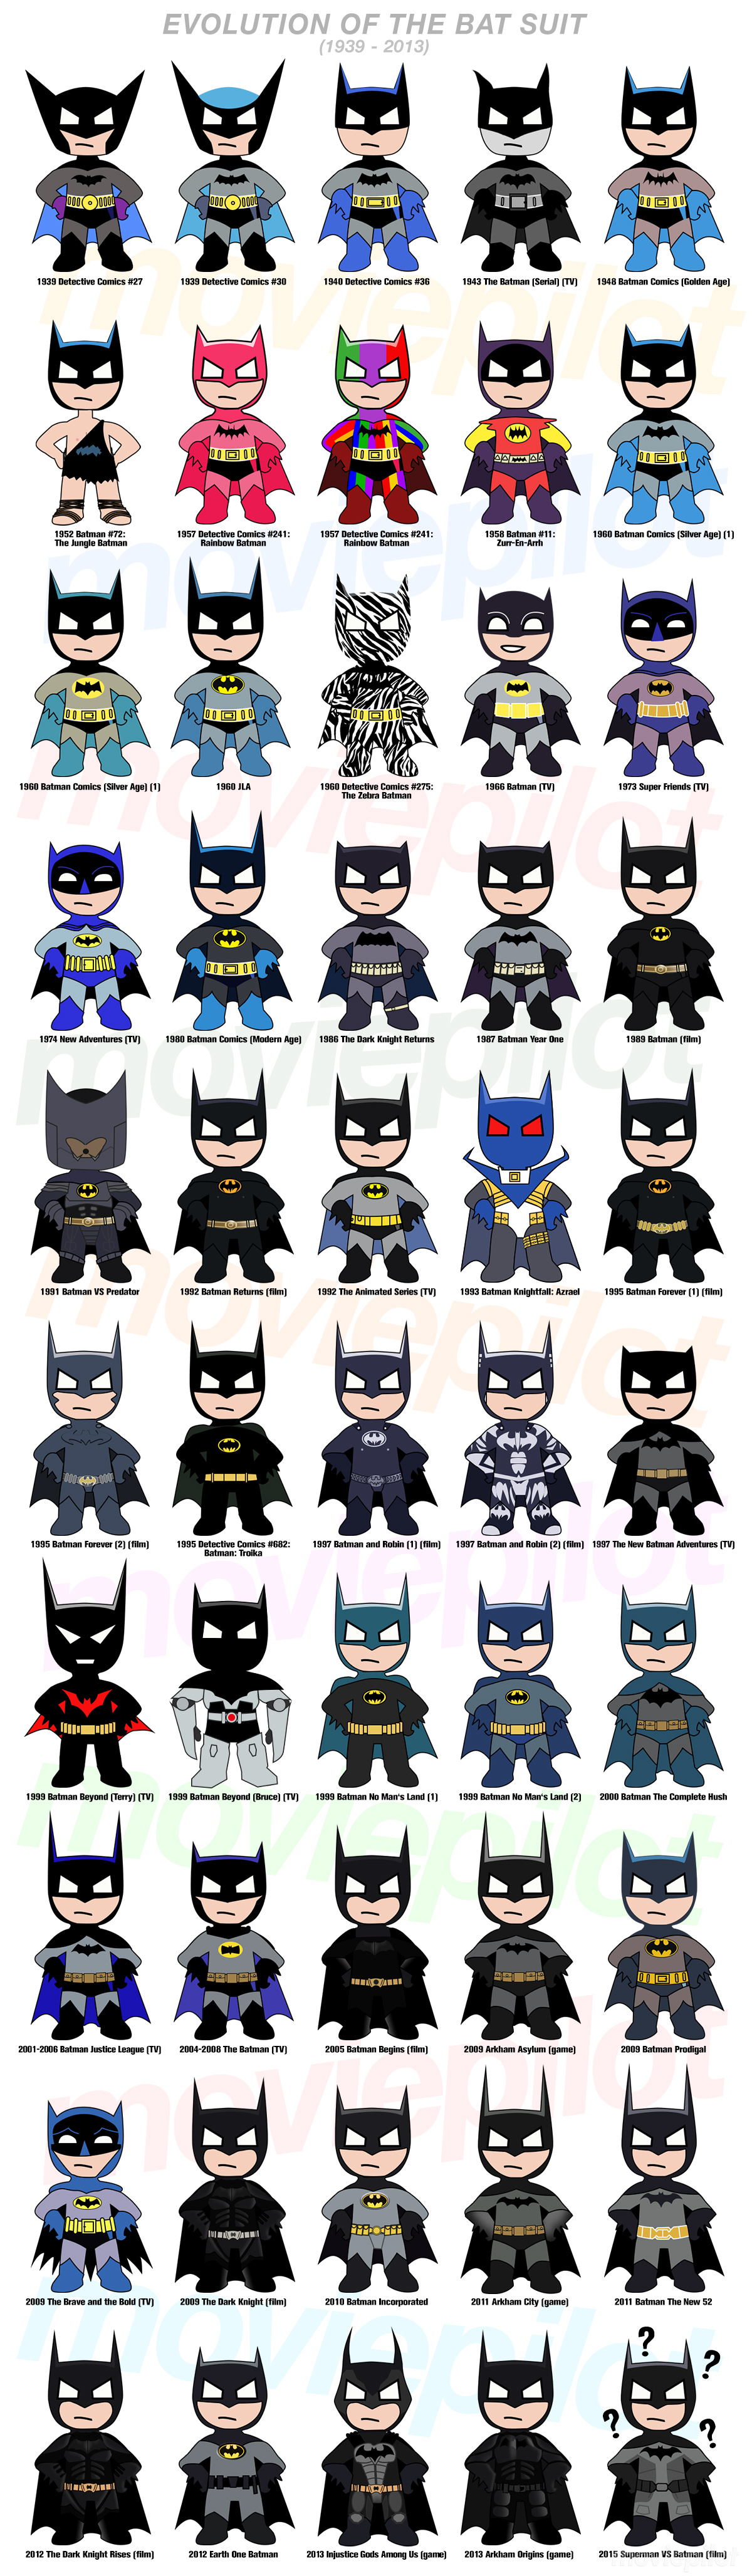 1957 and 60 were not the best years for batman... Brightest yes... Poor batman  sc 1 st  Pinterest & INFOGRAPHIC: The Evolution of the Batsuit | Art | Pinterest | Batman ...